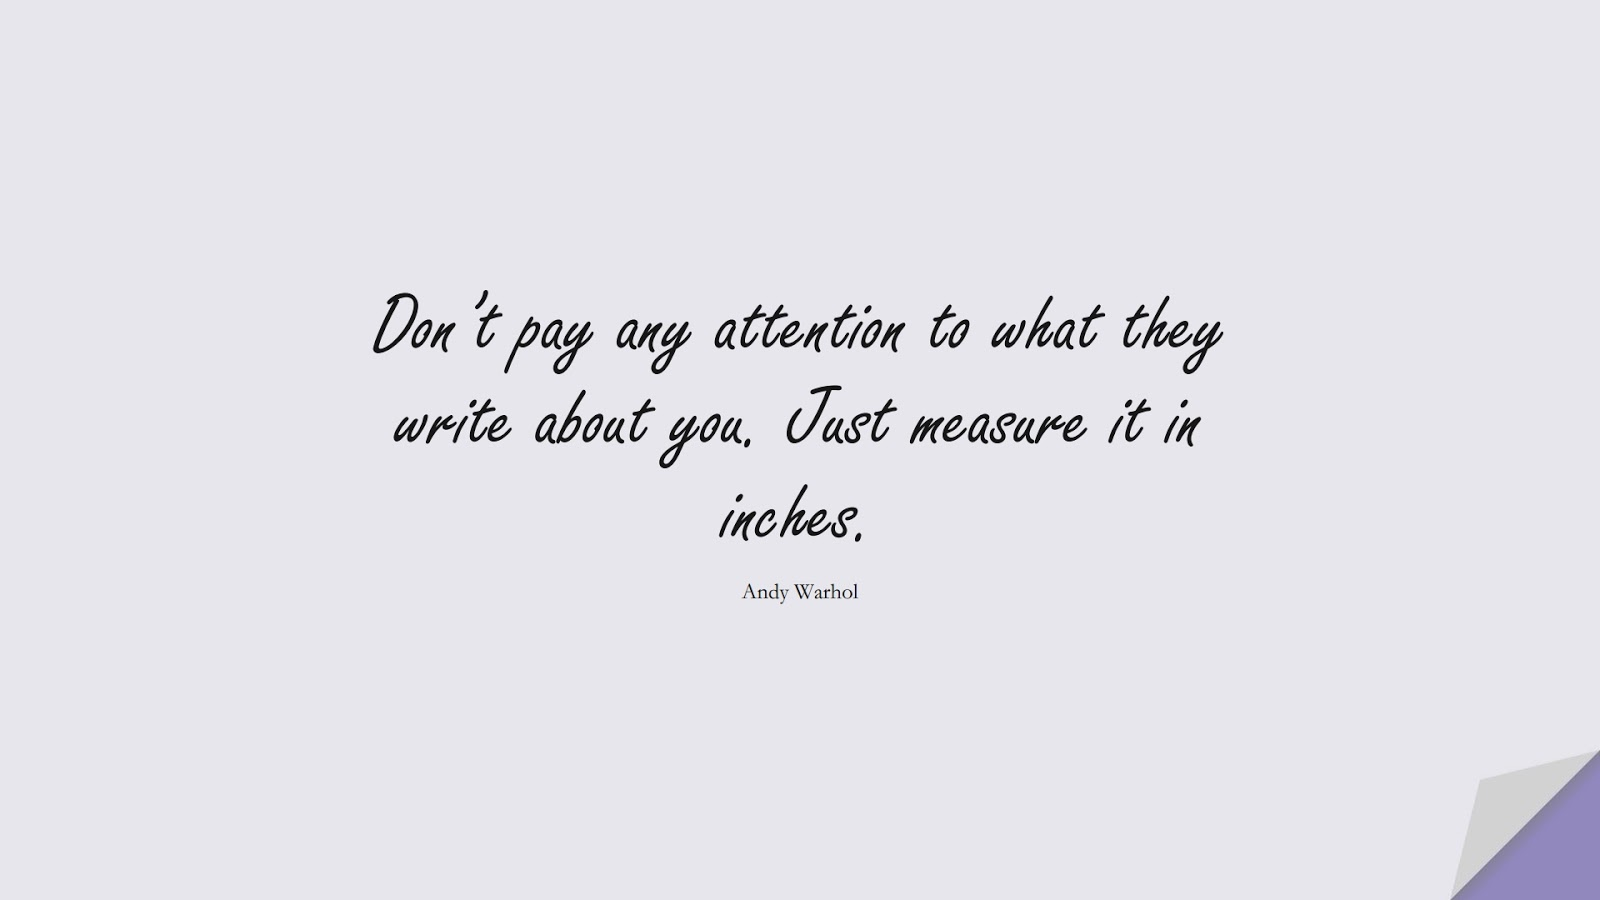 Don't pay any attention to what they write about you. Just measure it in inches. (Andy Warhol);  #HardWorkQuotes